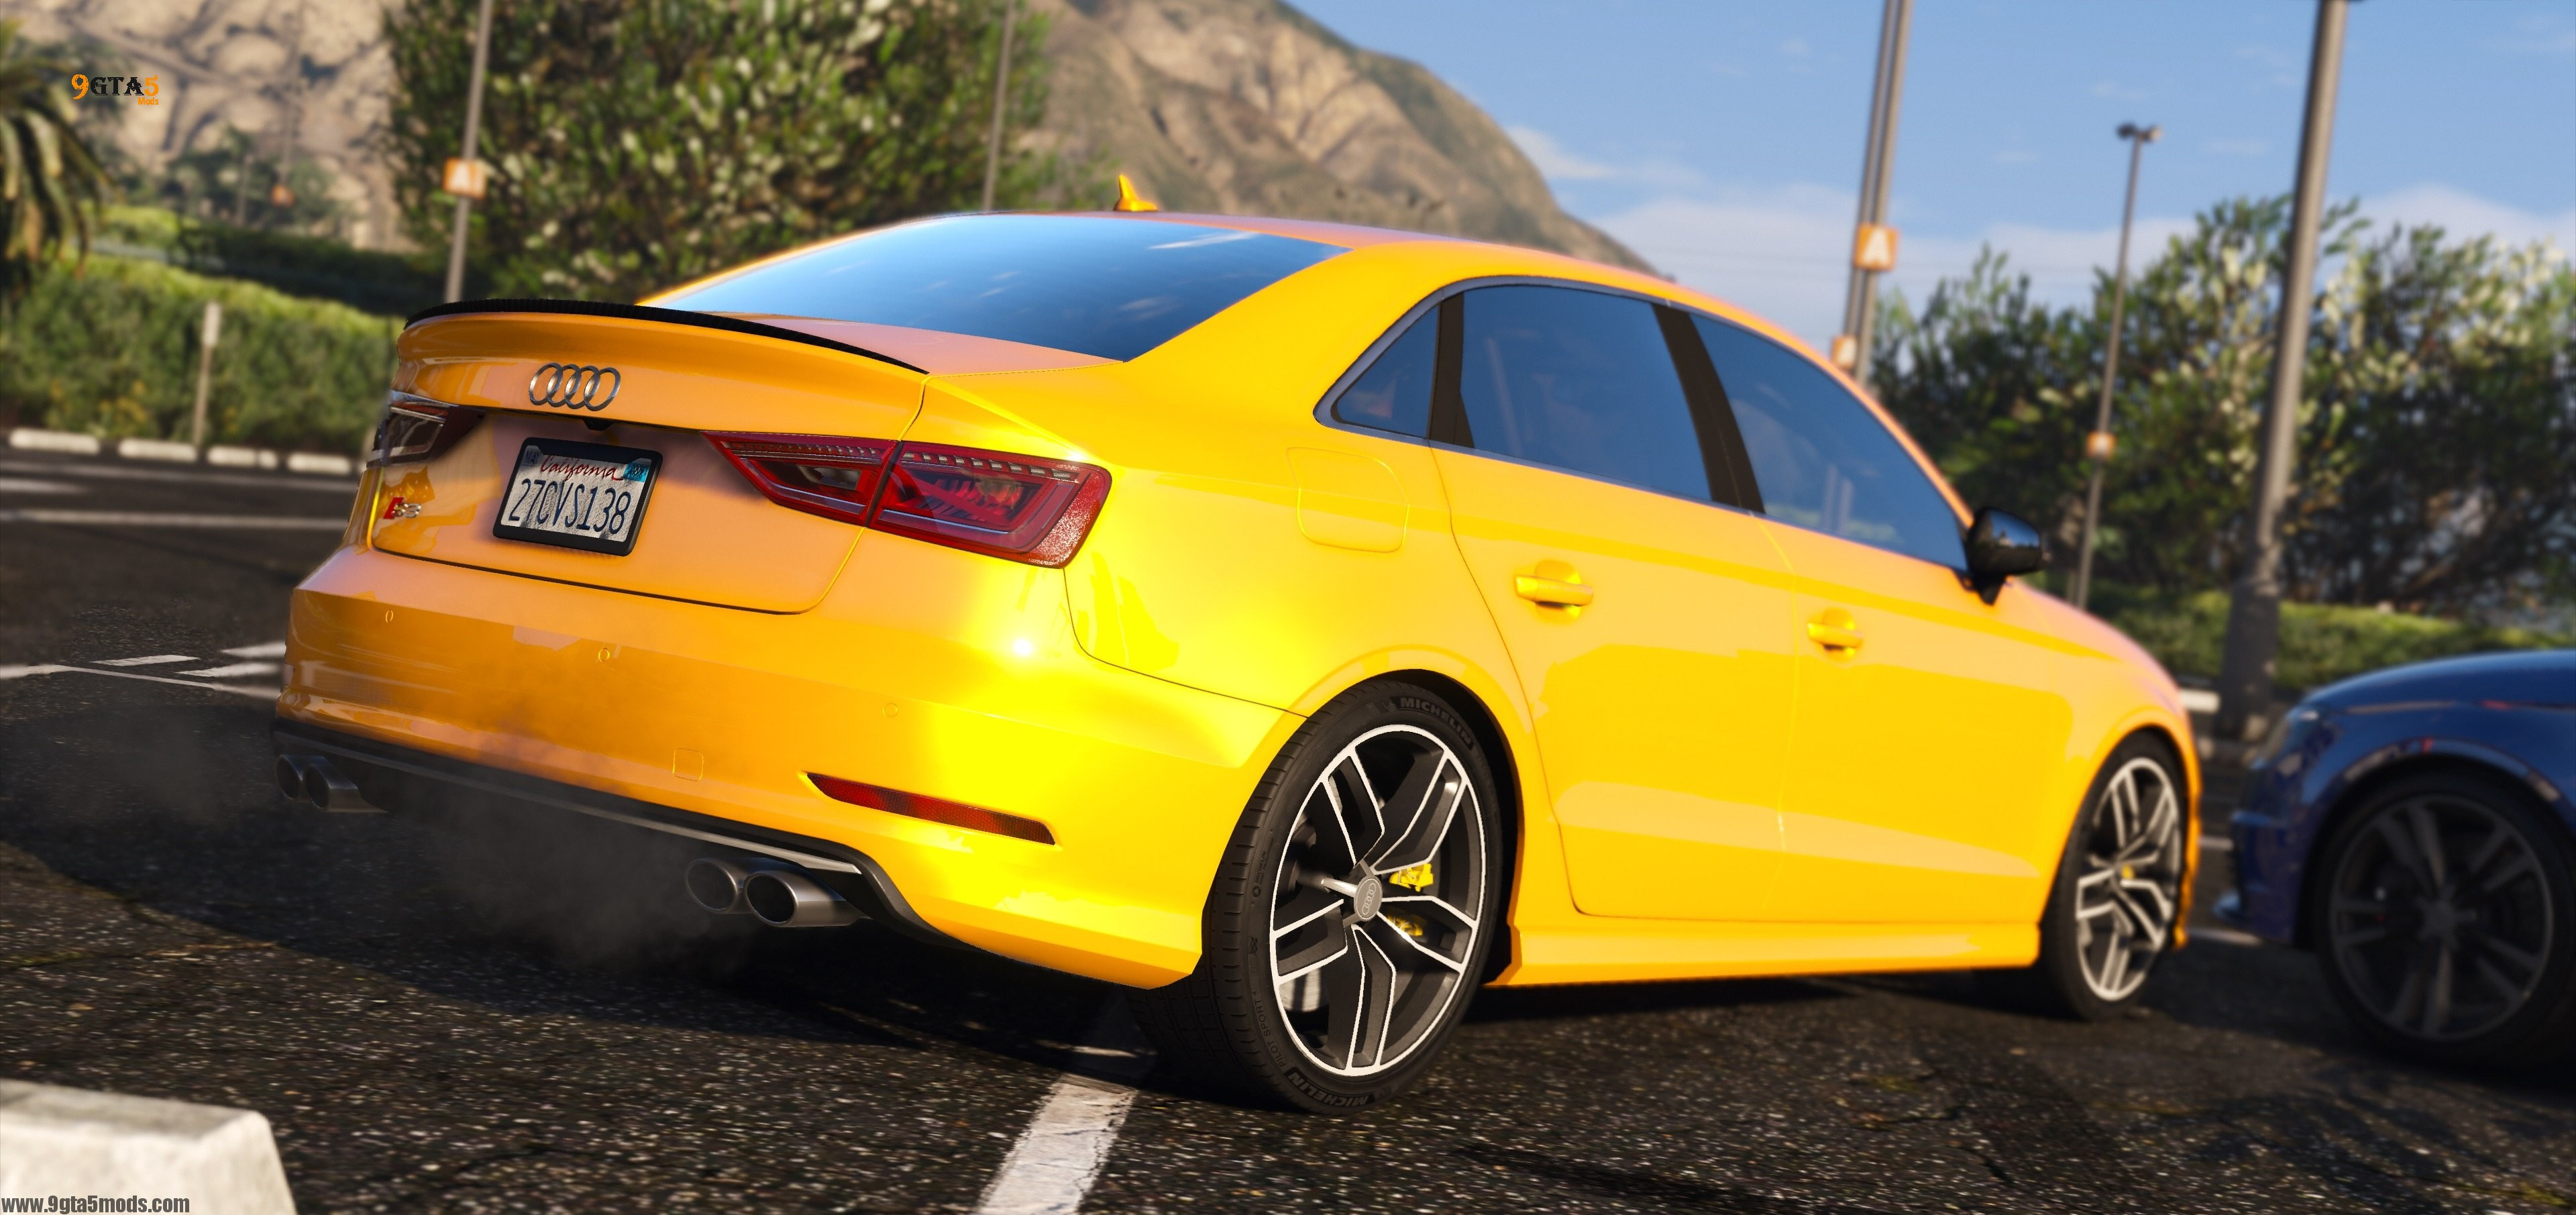 2015 audi a3 s3 sedan gta 5 vehicles. Black Bedroom Furniture Sets. Home Design Ideas